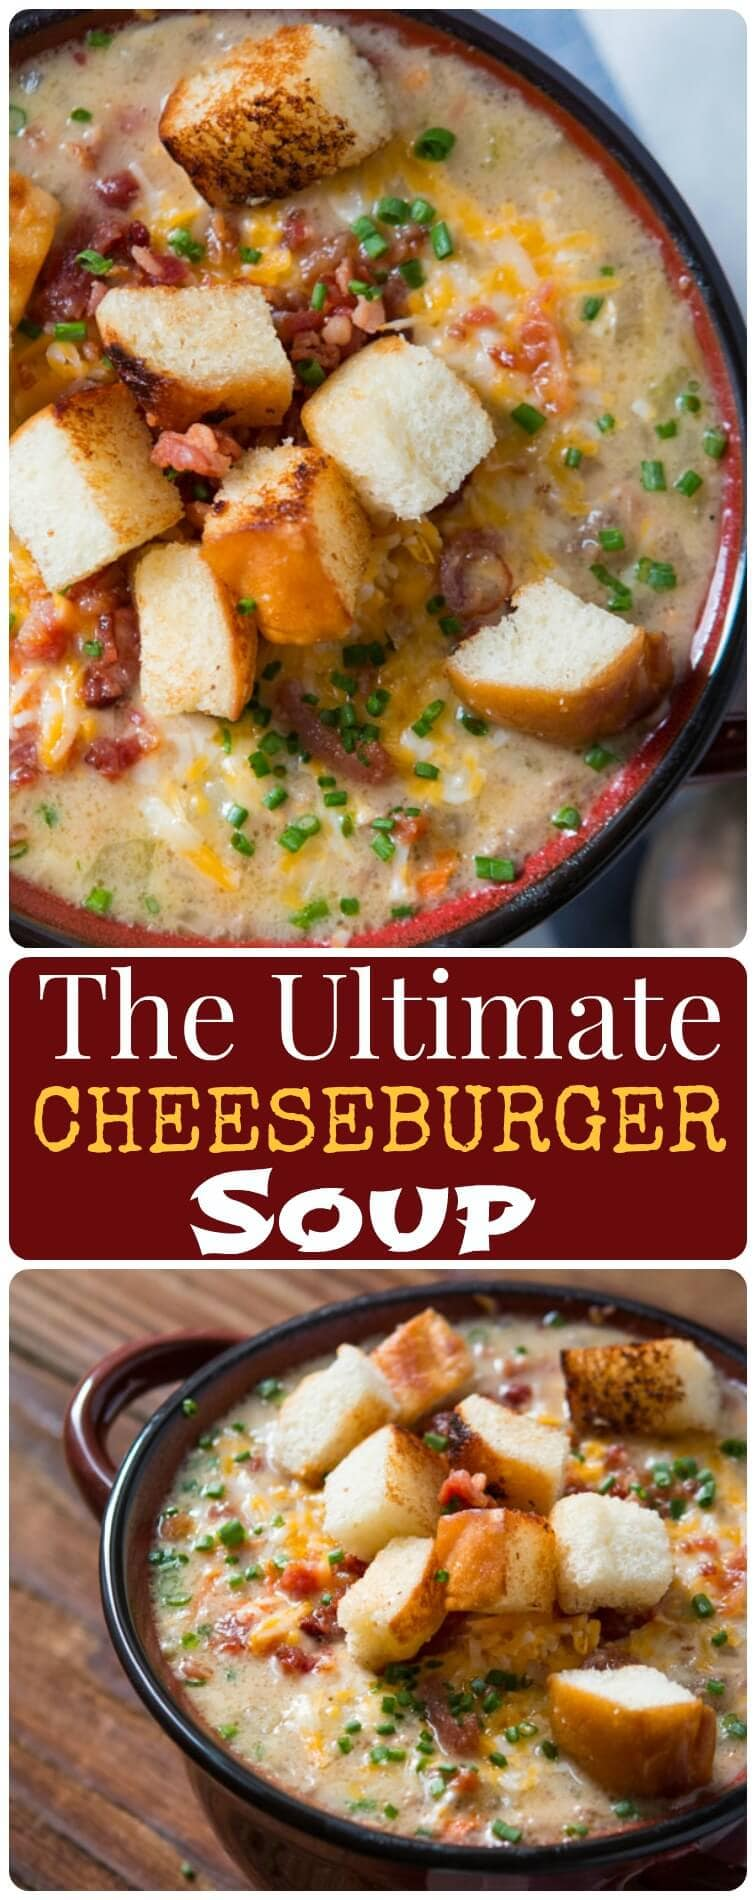 American's love a juicy, cheesy hamburger but what if you could turn it into an easy soup perfect all year round? The Ultimate Cheeseburger Soup is here!